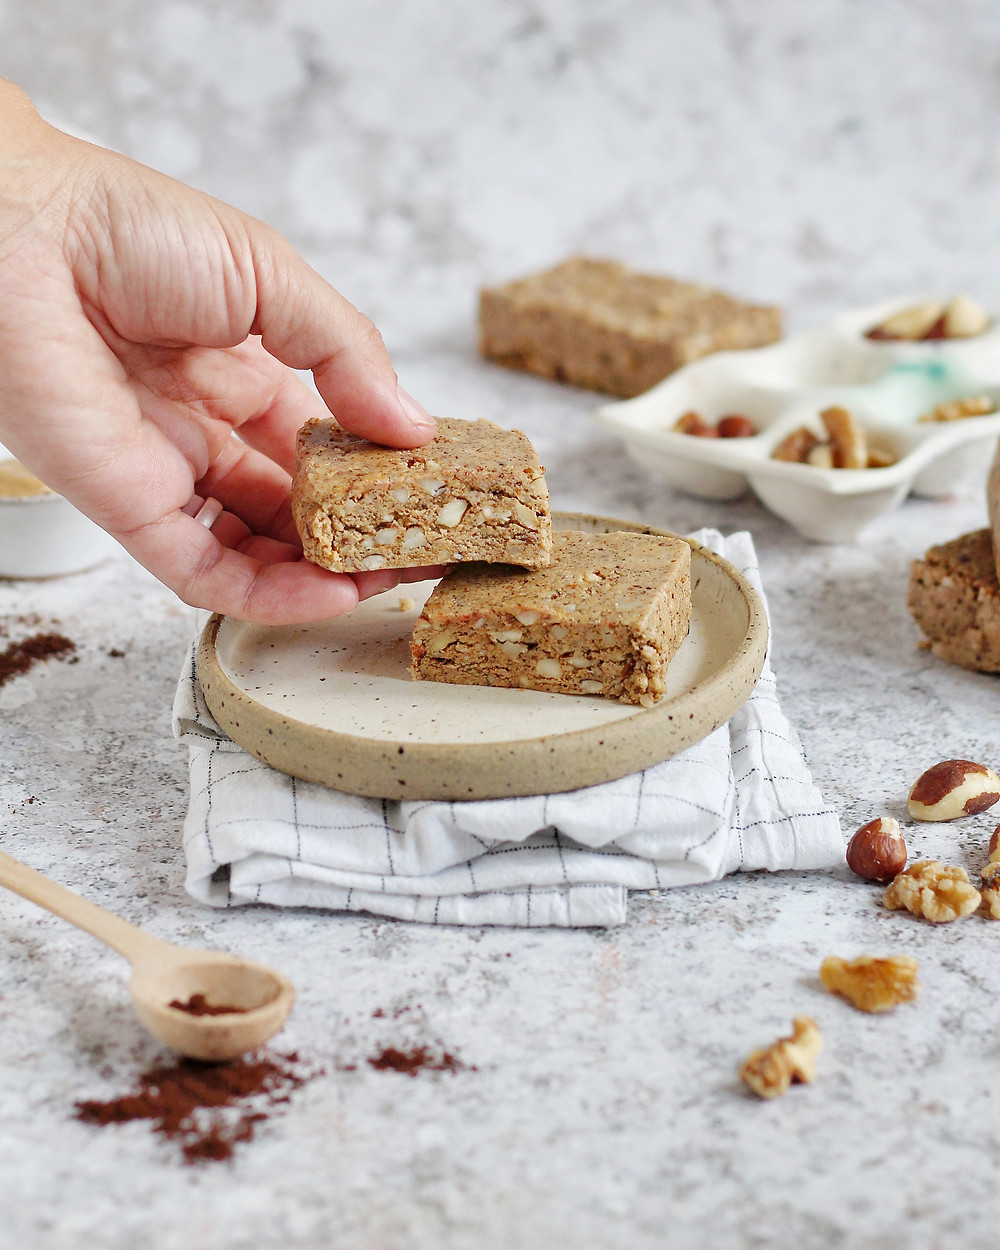 Homemade nut and coffee protein bars